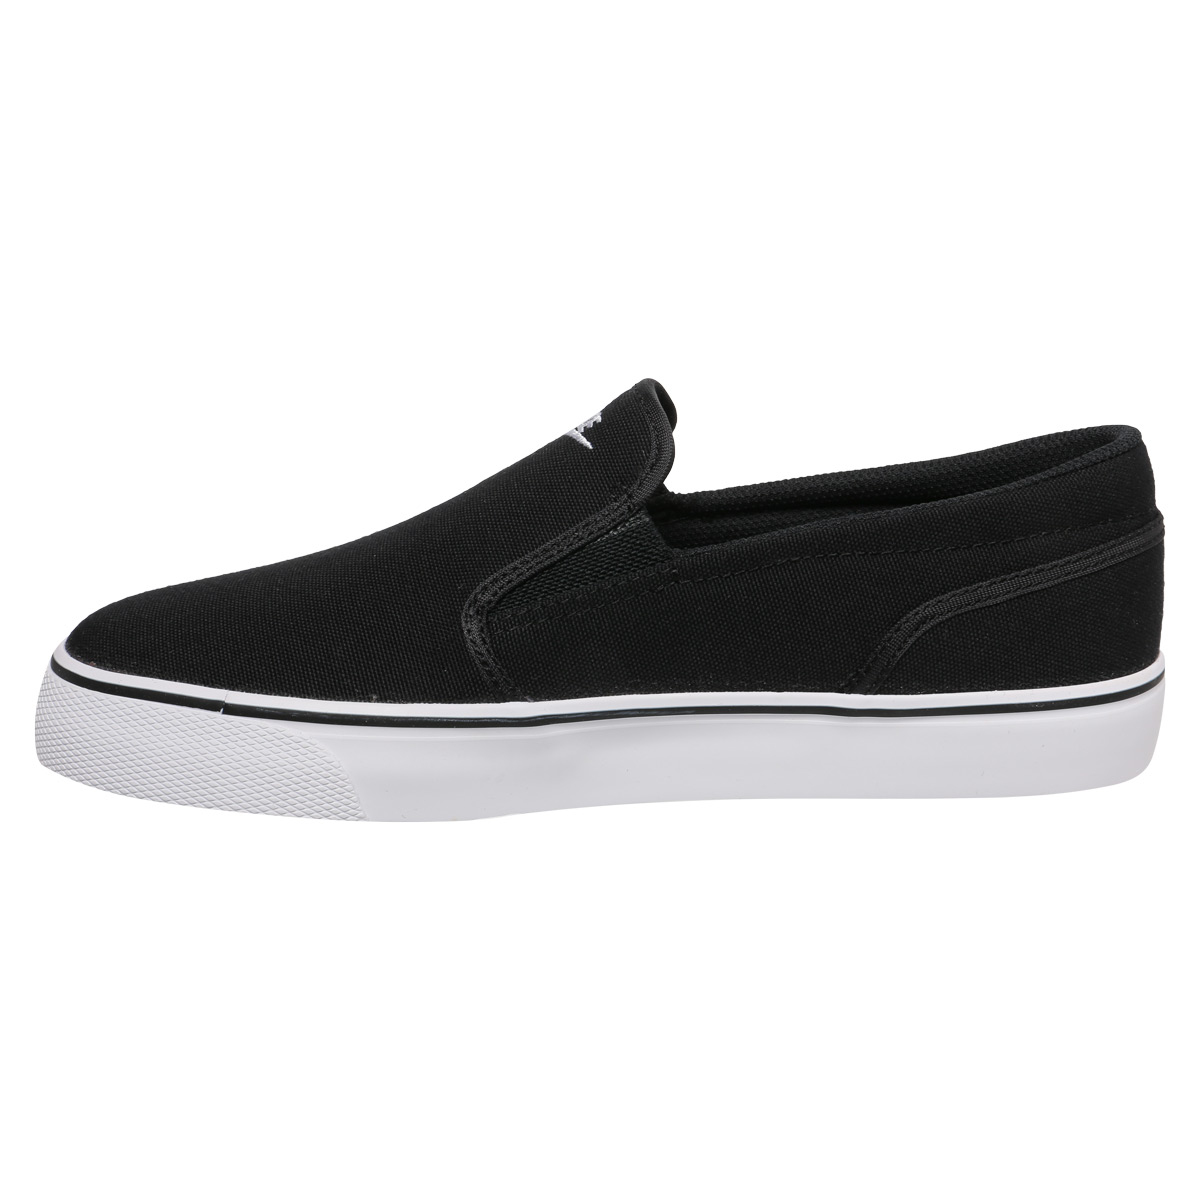 mens nike slip on shoes